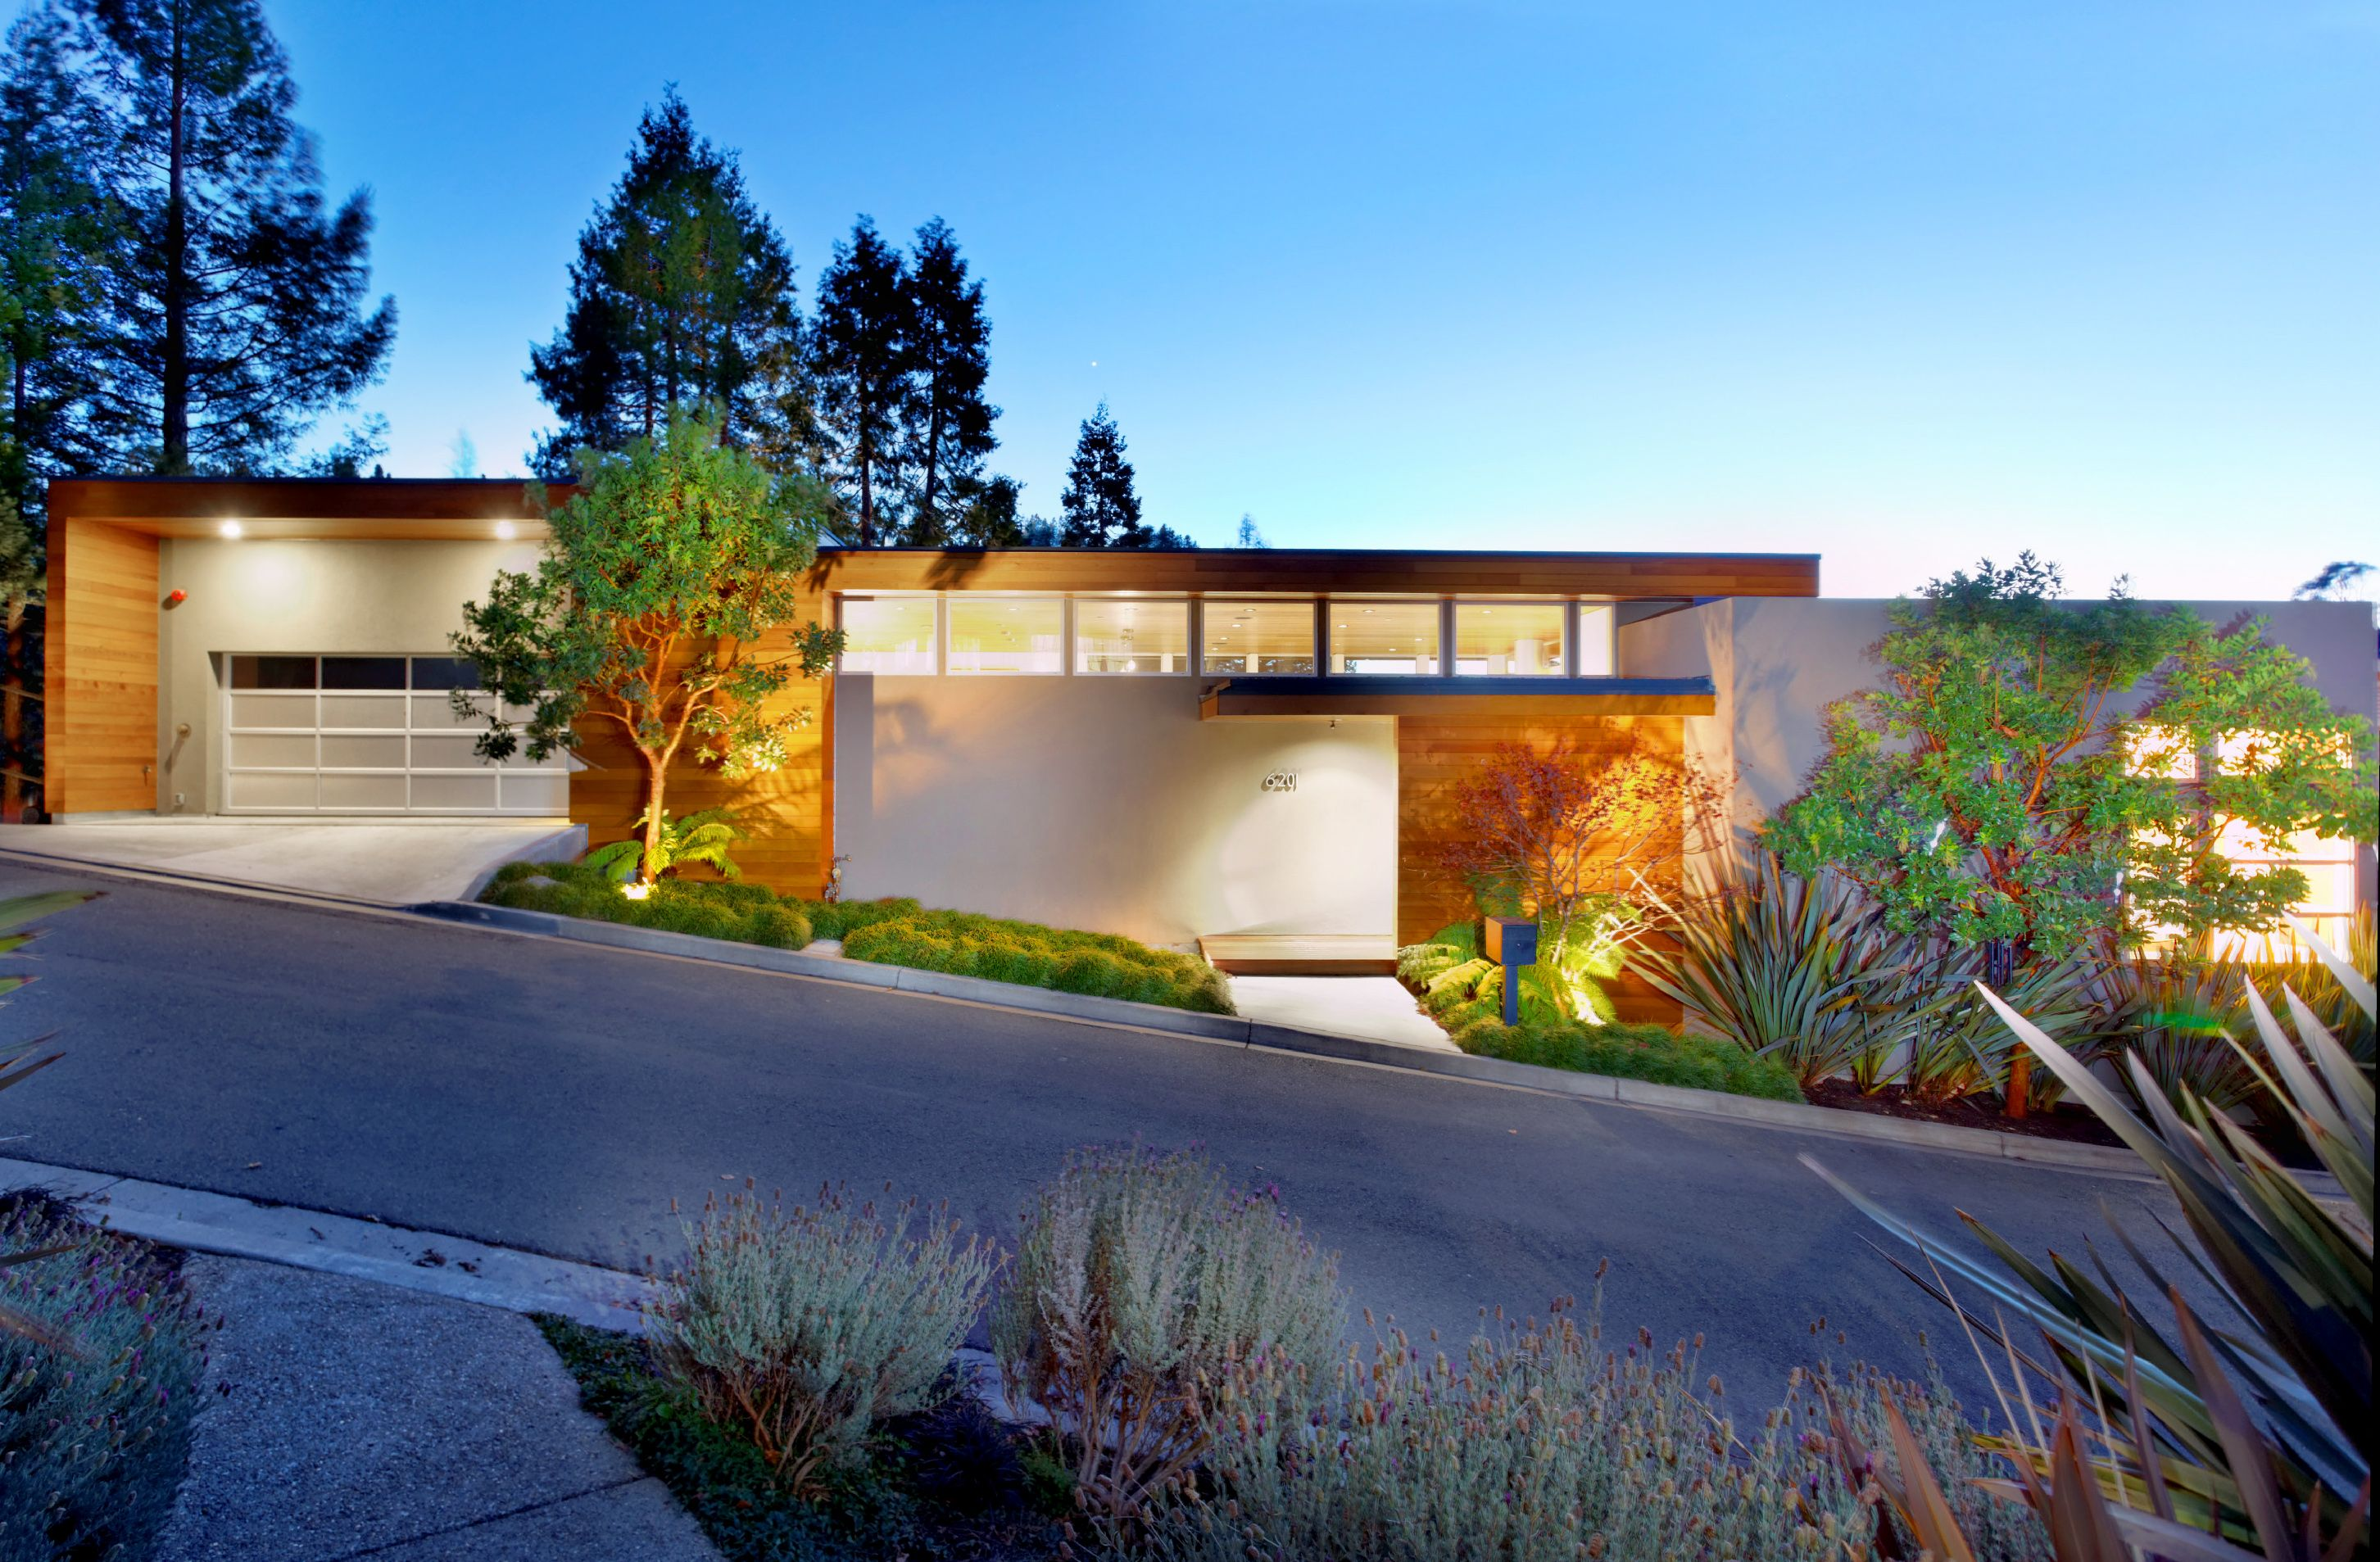 custom built modern home, designedbay area architect robert